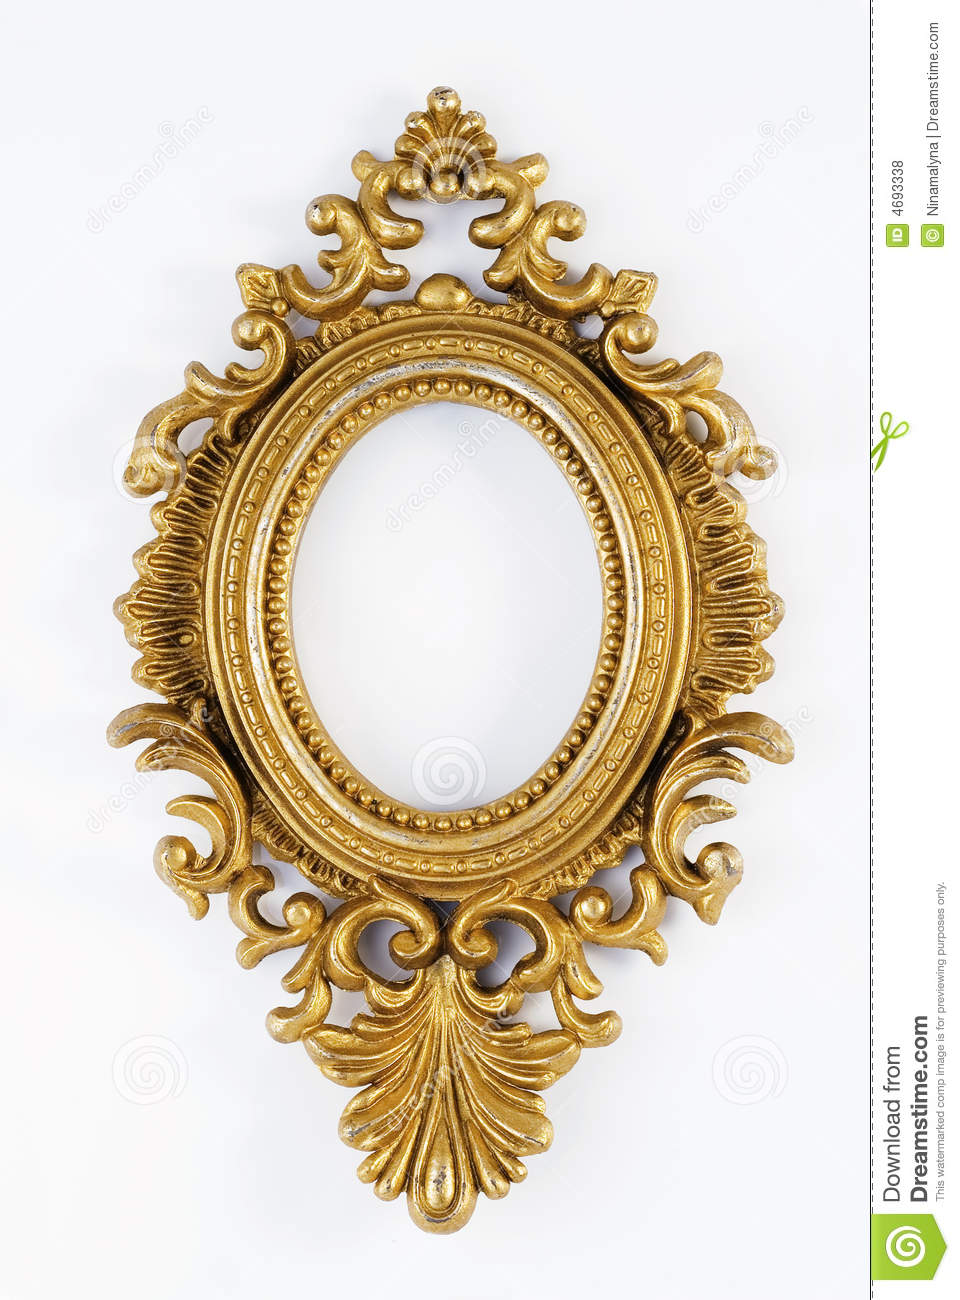 oval vintage gold ornate frame ornate gold oval frame